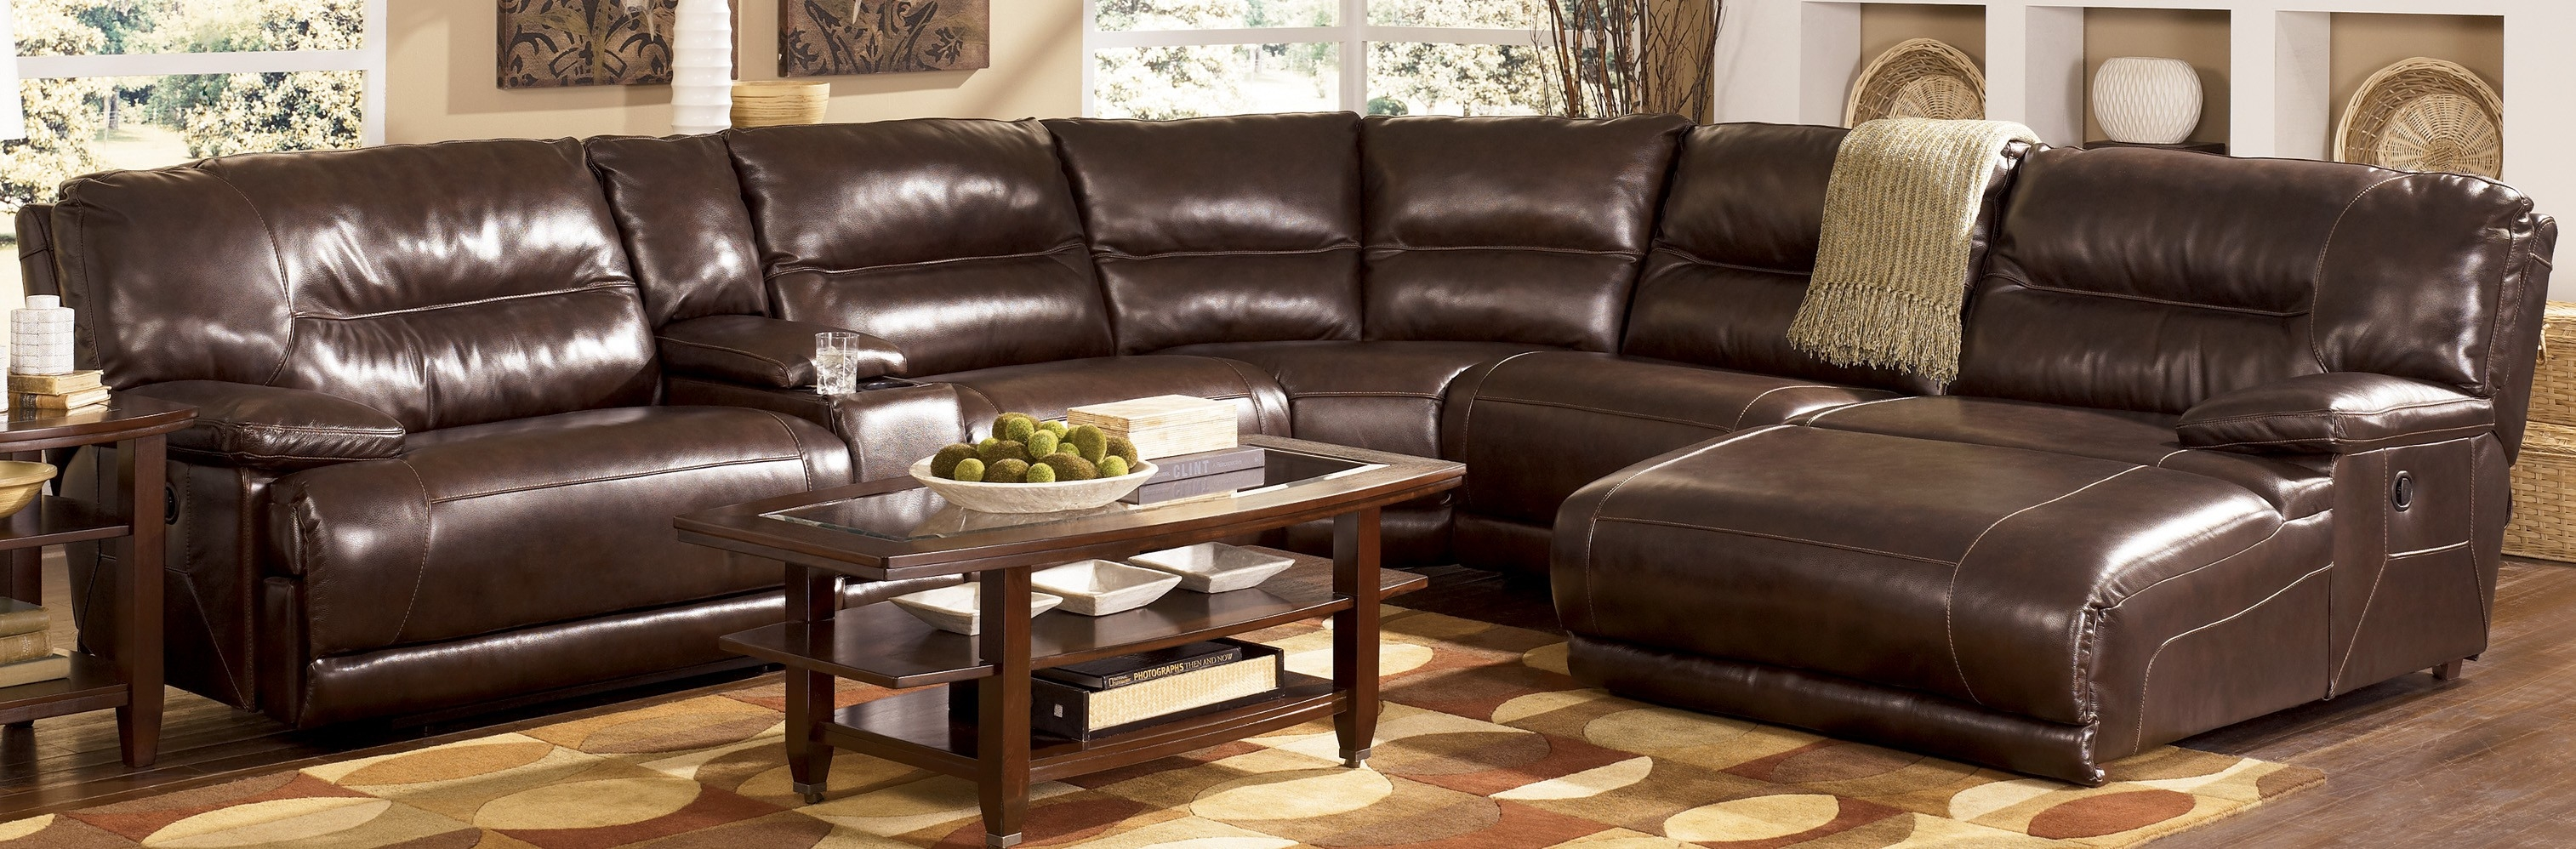 Leather Sectional Chaise Lounge